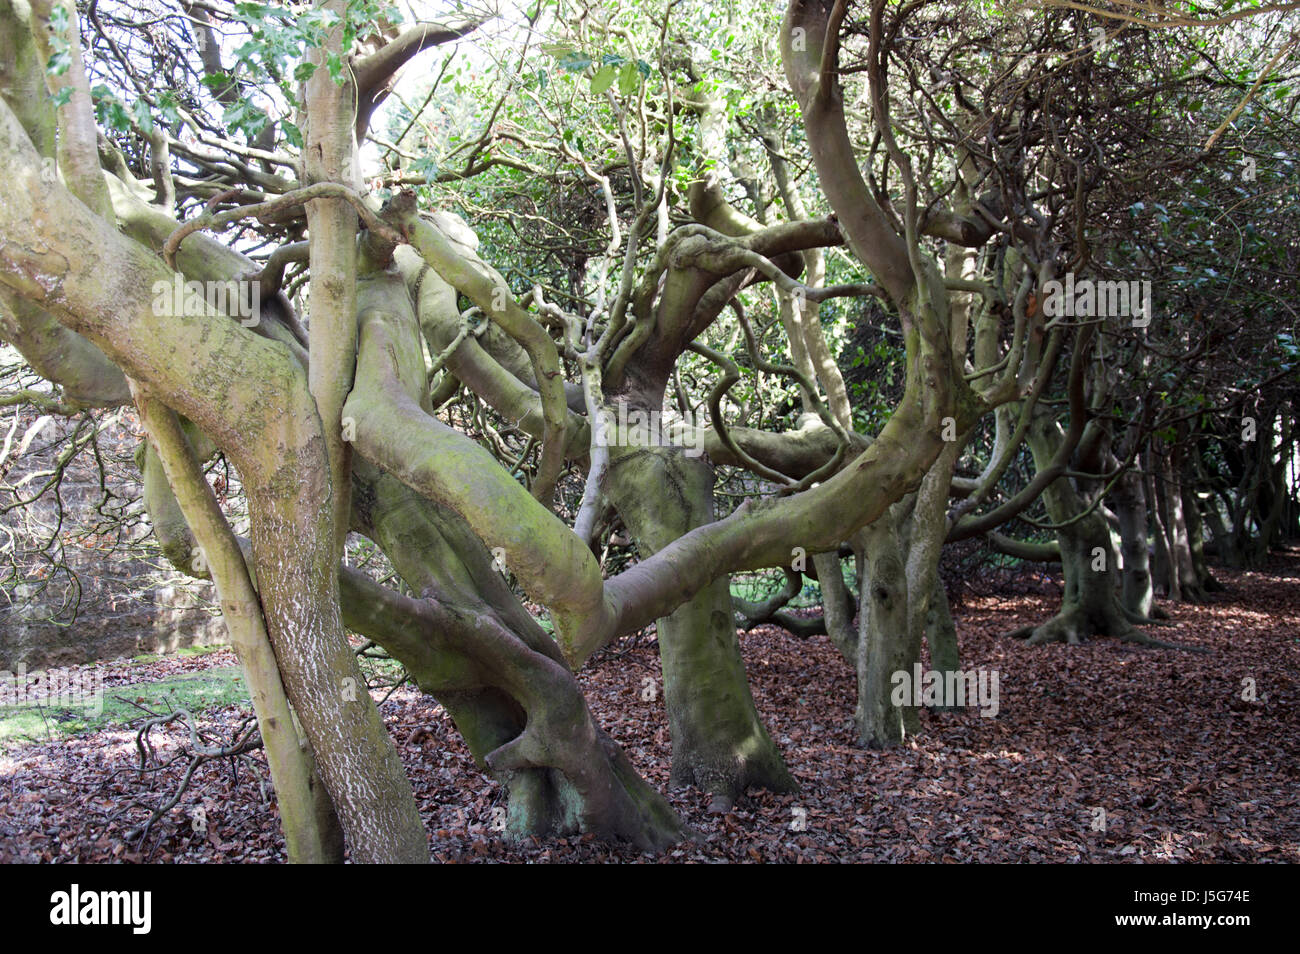 Can't see the wood for the trees, twisted and matted branches of  mature trees in a woodland setting - Stock Image